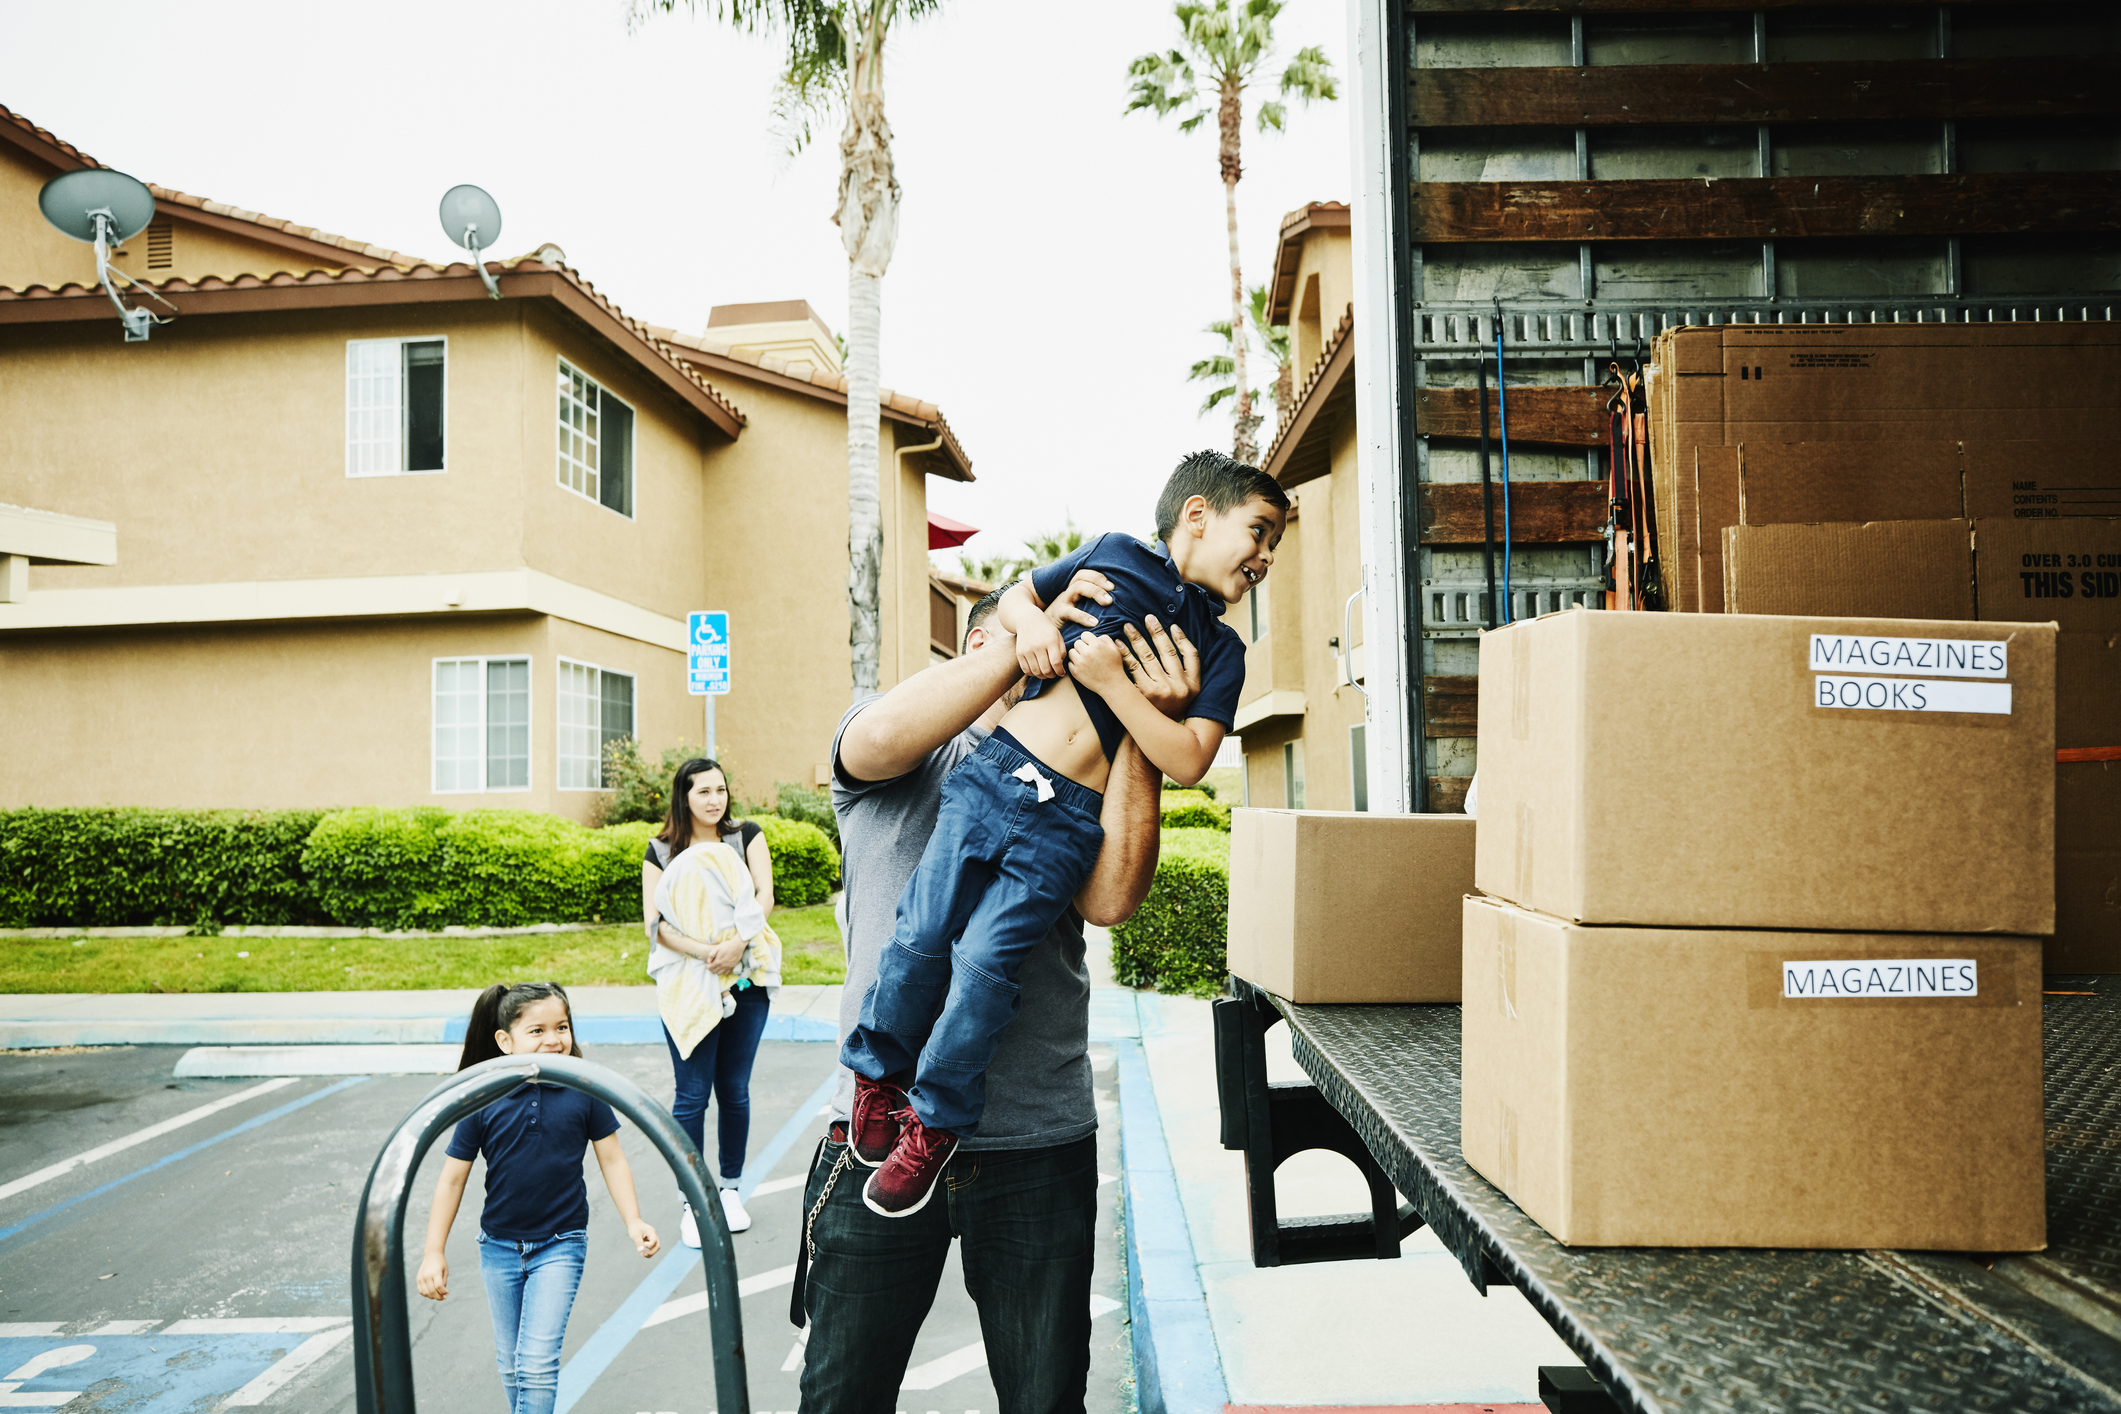 ather lifting smiling son into back of moving truck